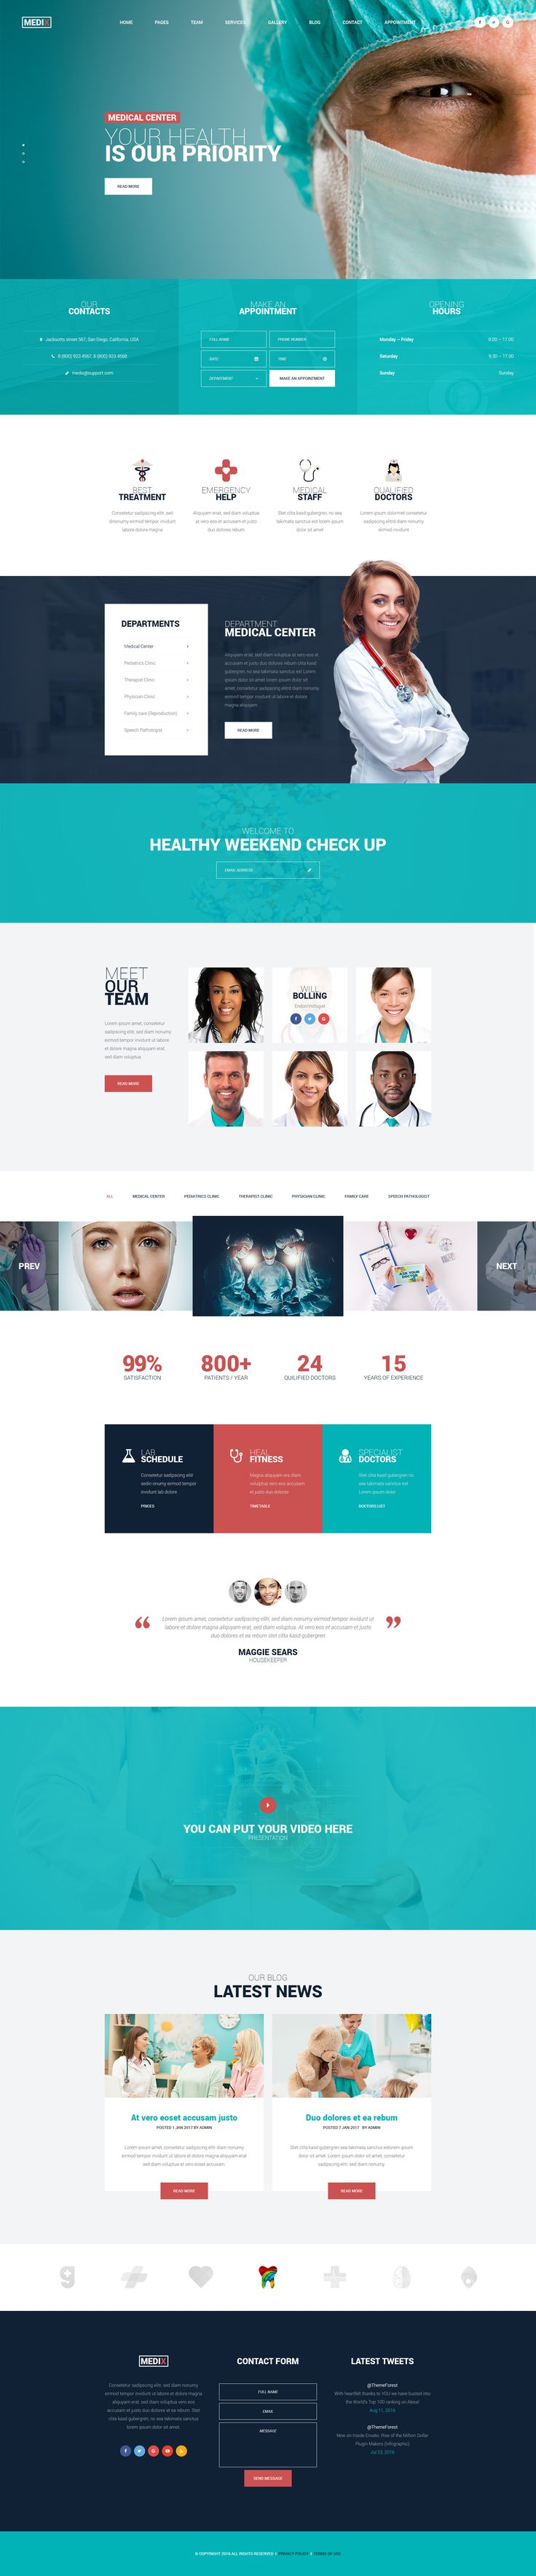 Medix - Medical Clinic PSD Template #cure #diagnostics #doctor • Download ➝ https://themeforest.net/item/medix-medical-clinic-psd-template/19222351?ref=pxcr